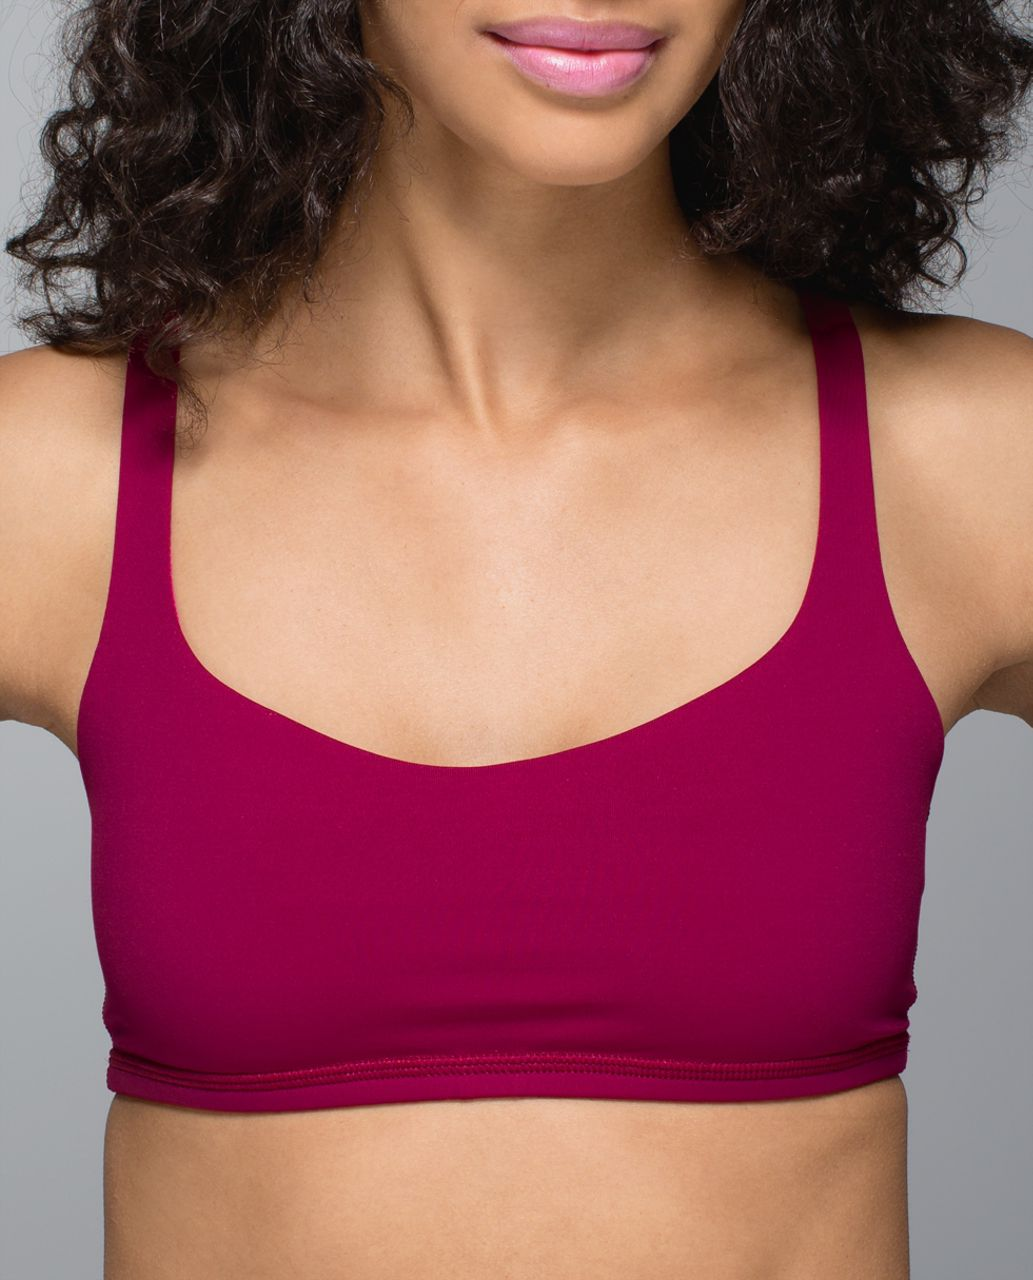 Lululemon Free To Be Bra - Bumble Berry / West2east Stripe Bumble Berry